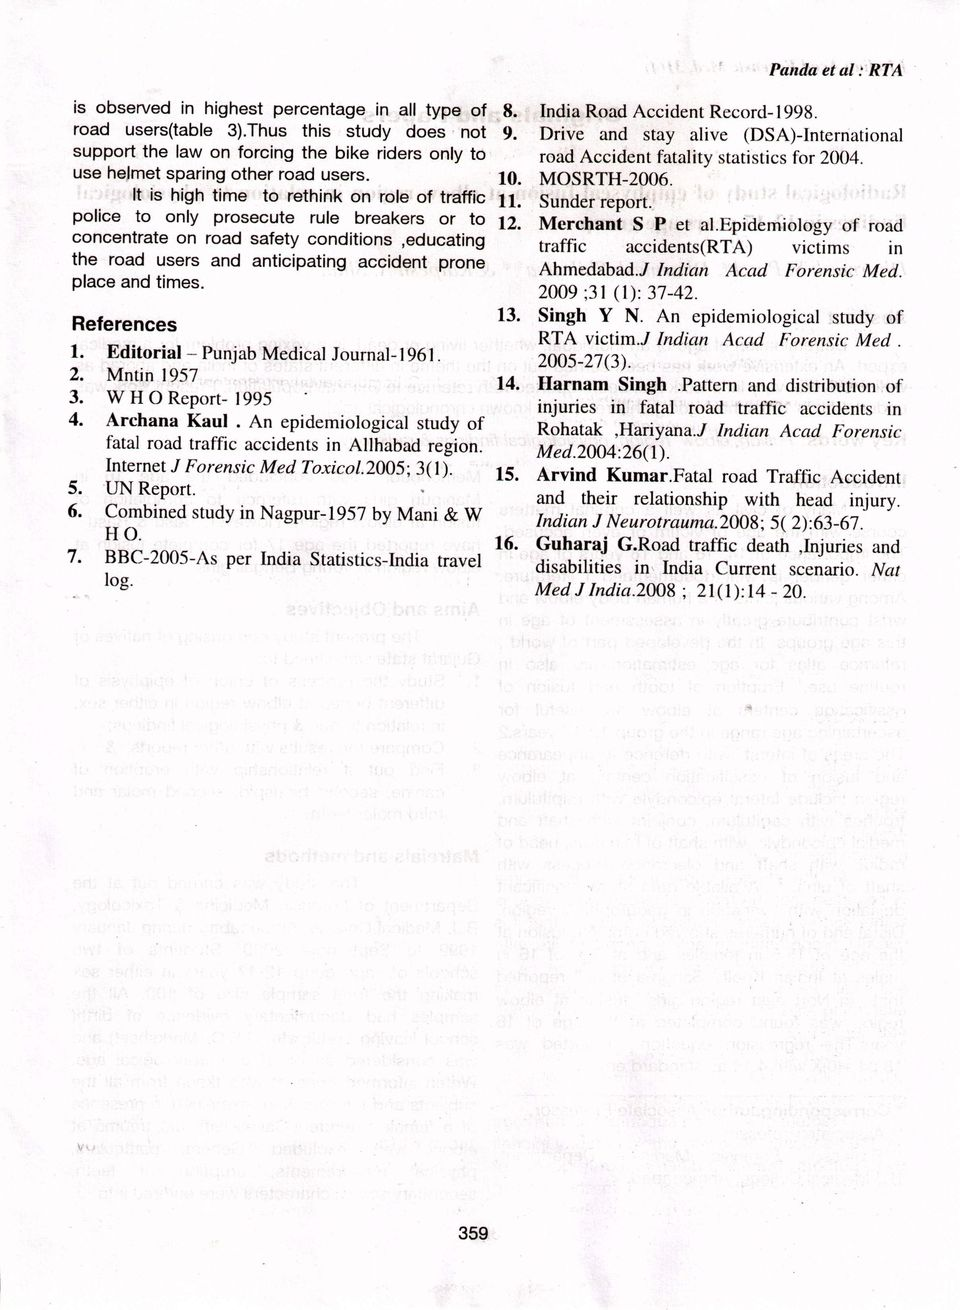 concentrate on road safety conditions,educating the road users and anticipating accident prone place and times. References 13. 1. Editorial- Punjab Medical Iournal-1961. 2. Mntin 1957 14. 3.